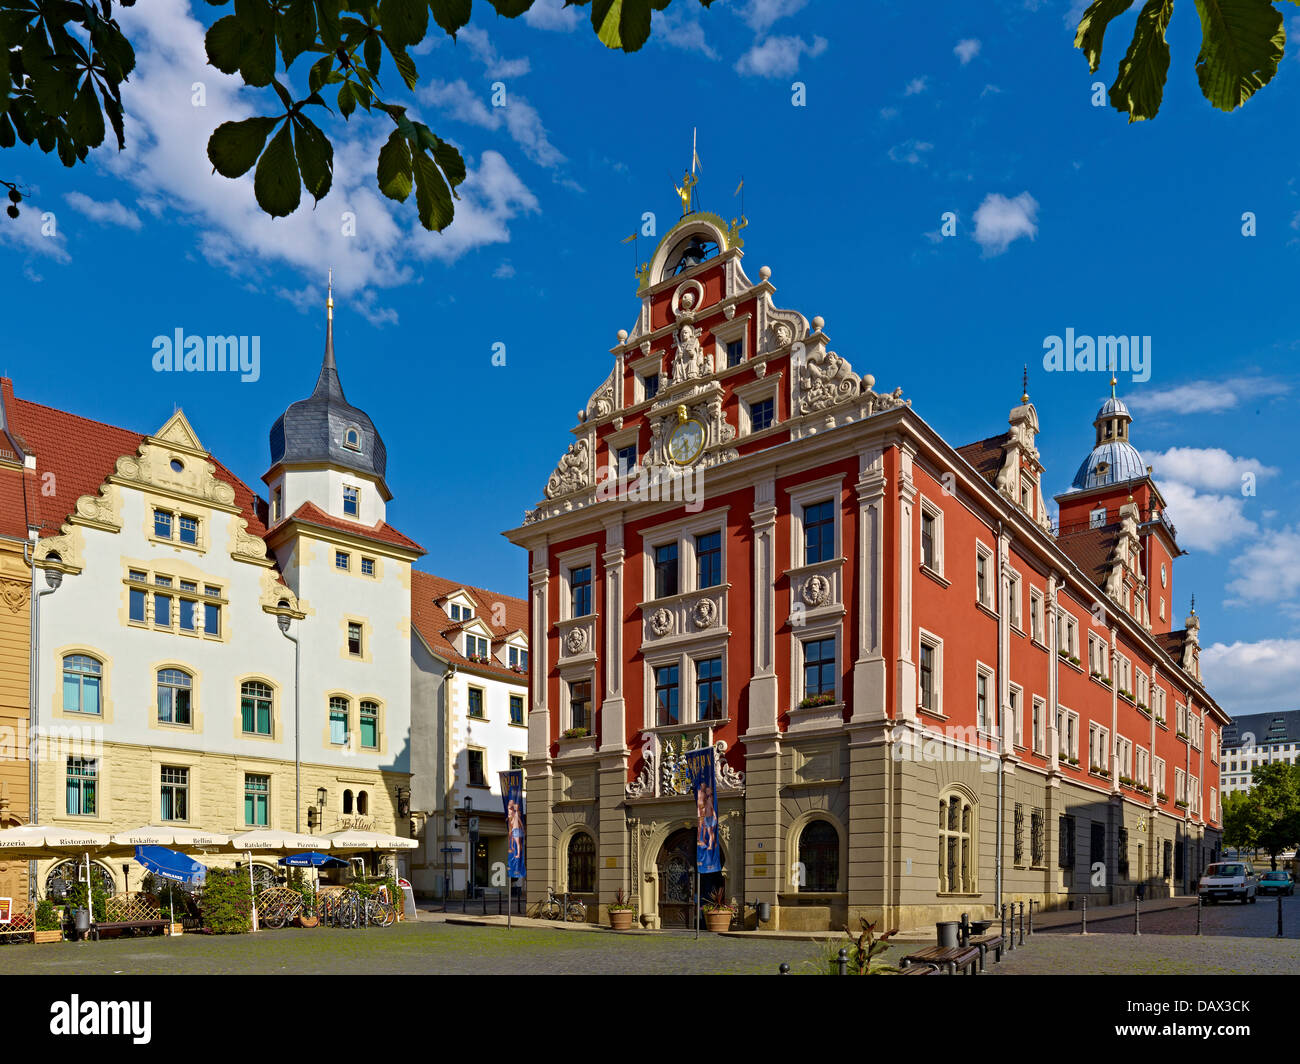 Town Hall with sidewalk cafe, Hauptmarkt, Gotha, Thuringia, Germany - Stock Image